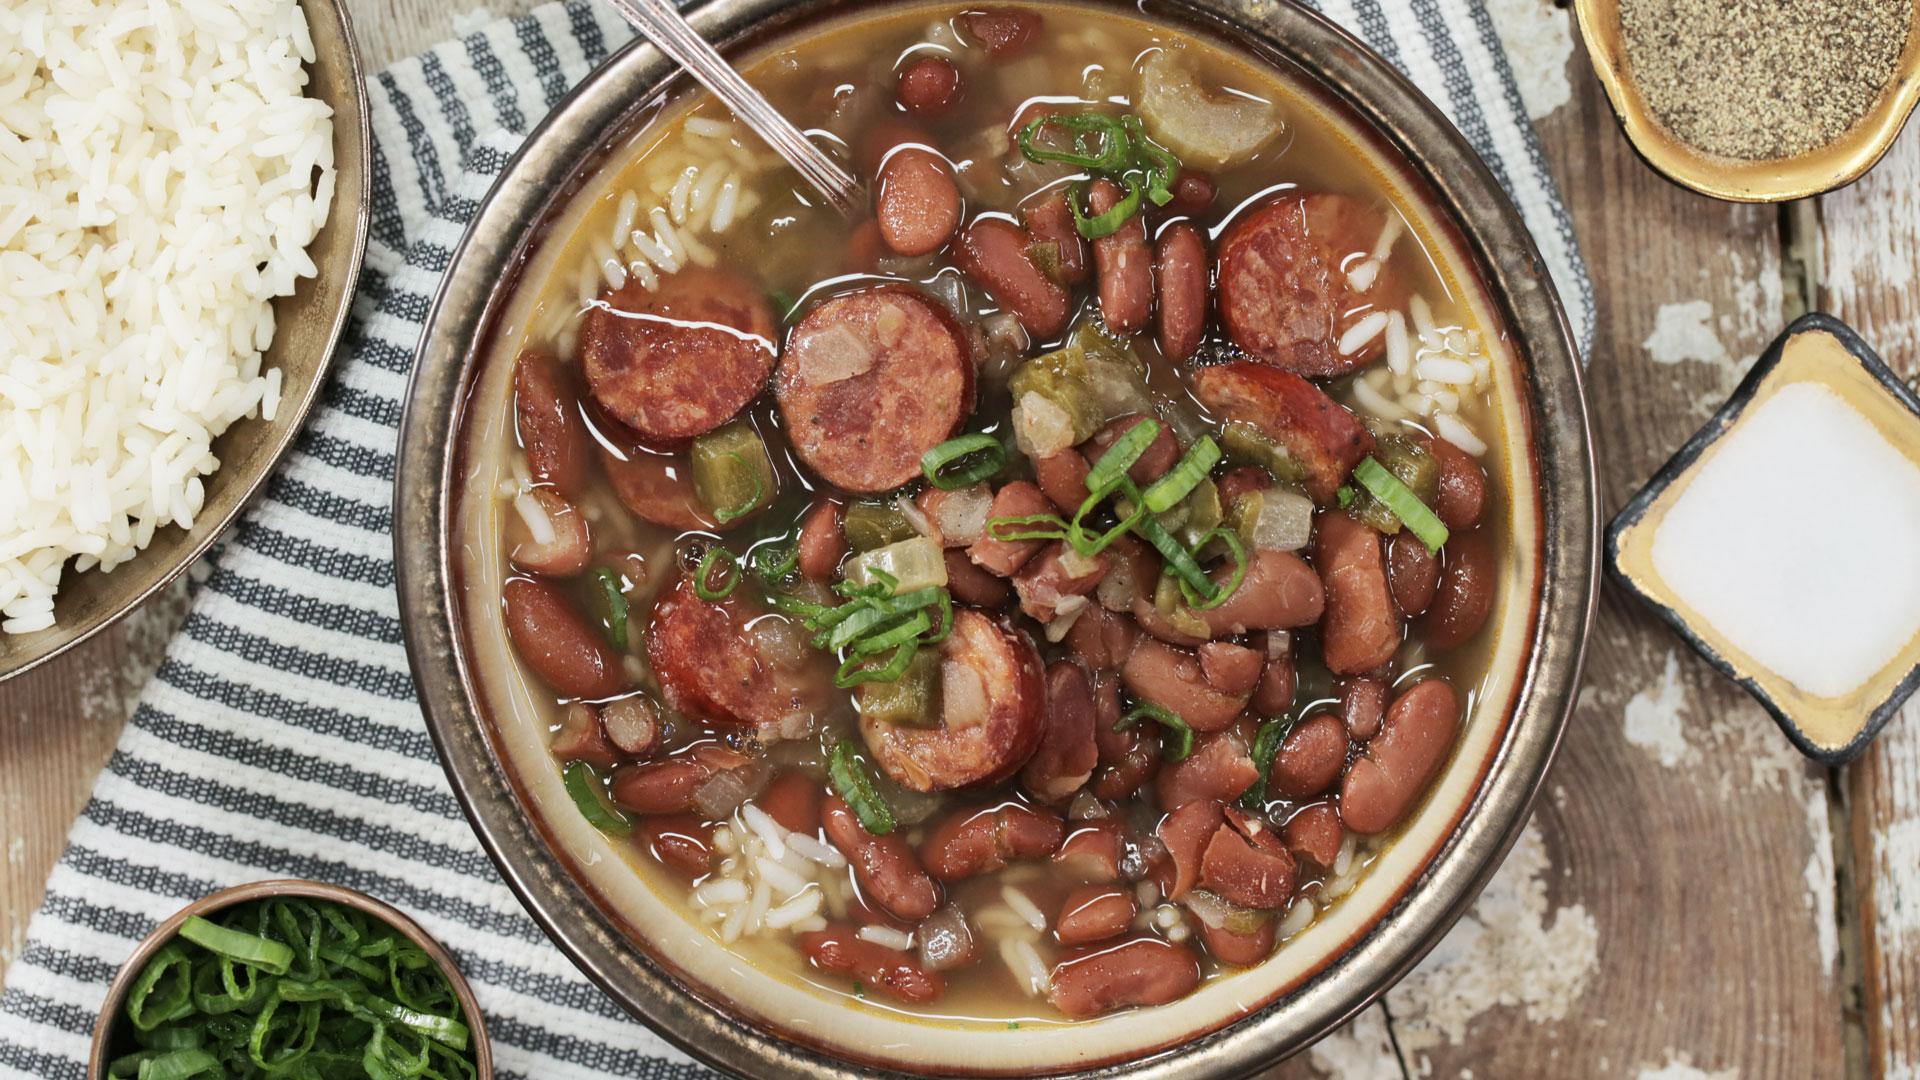 New Orleans Red Beans And Rice Image